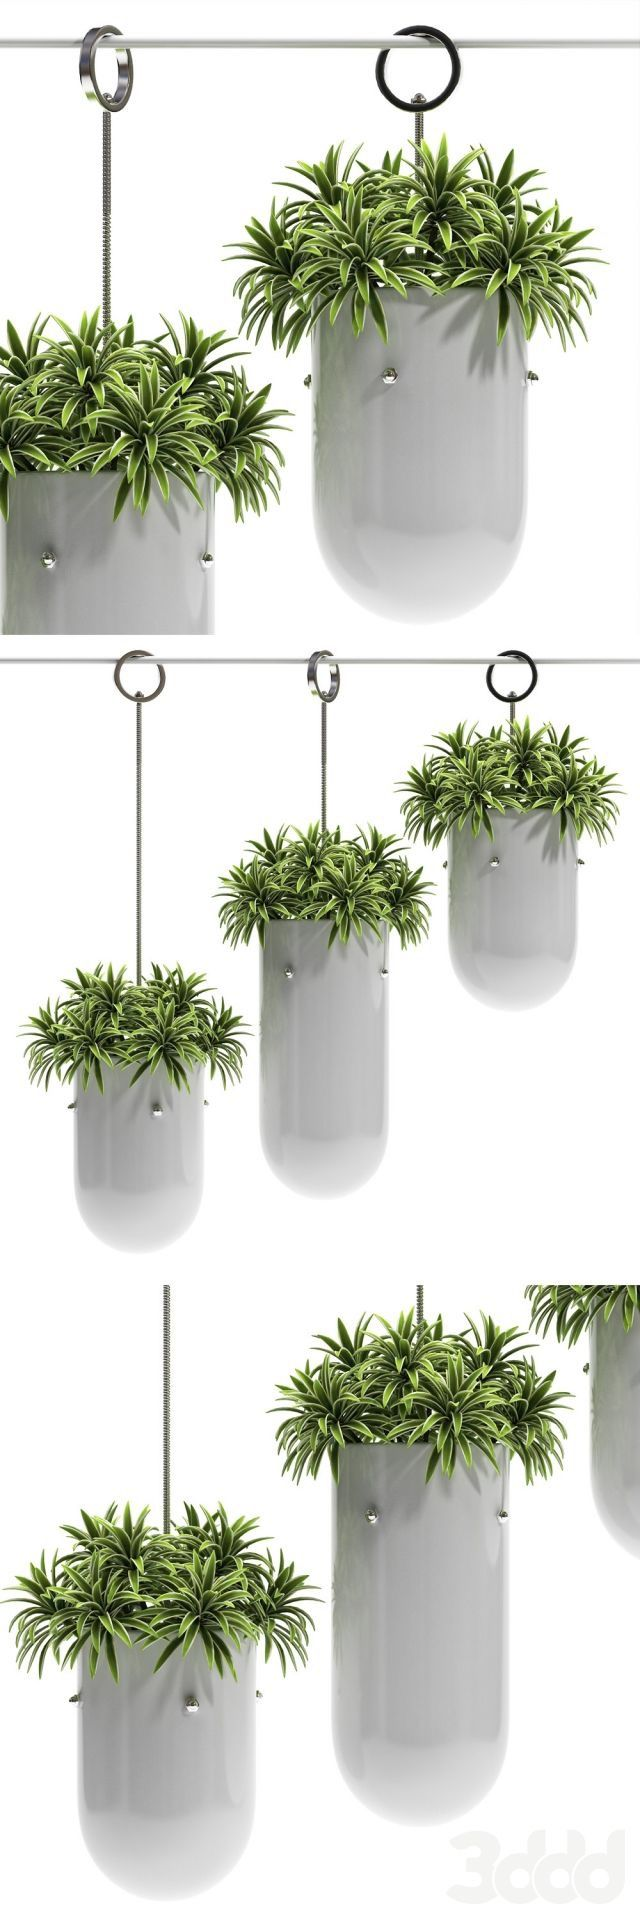 Best กระถางแขวน images on Pinterest House plants String